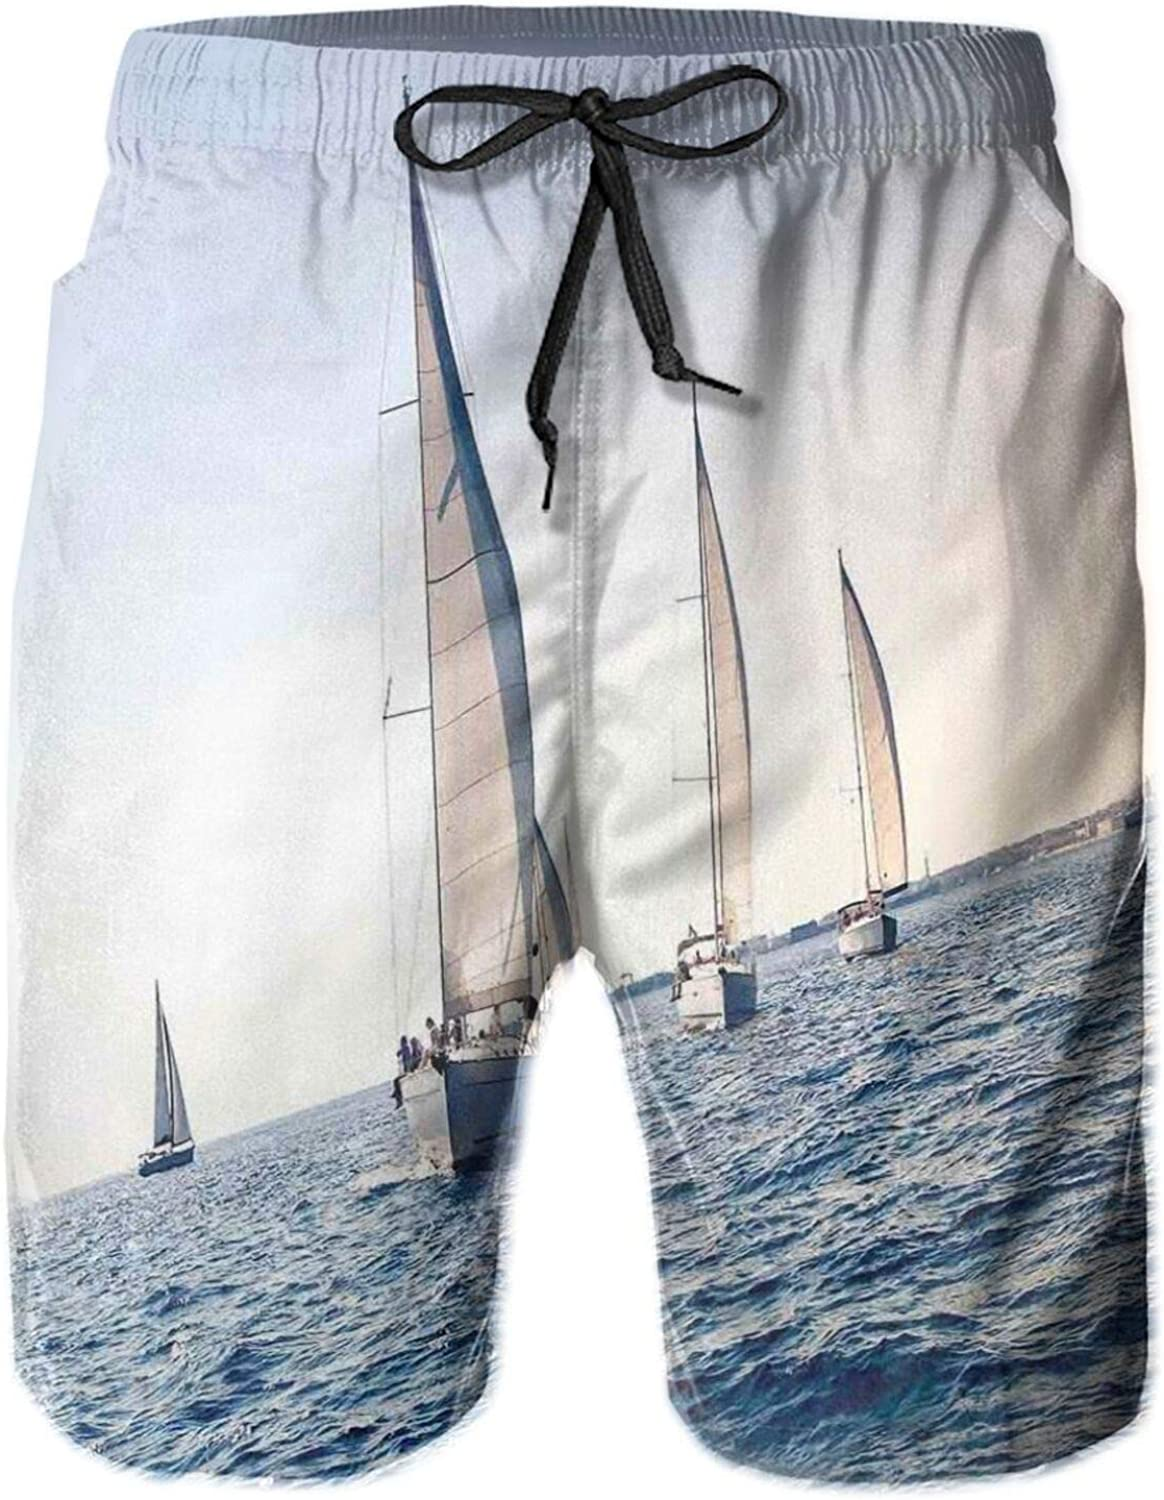 Racing Sailboats in Mediterranean Sea Adventure Winner Sports Freedom Photo Print Swimming Trunks for Men Beach Shorts Casual Style,M